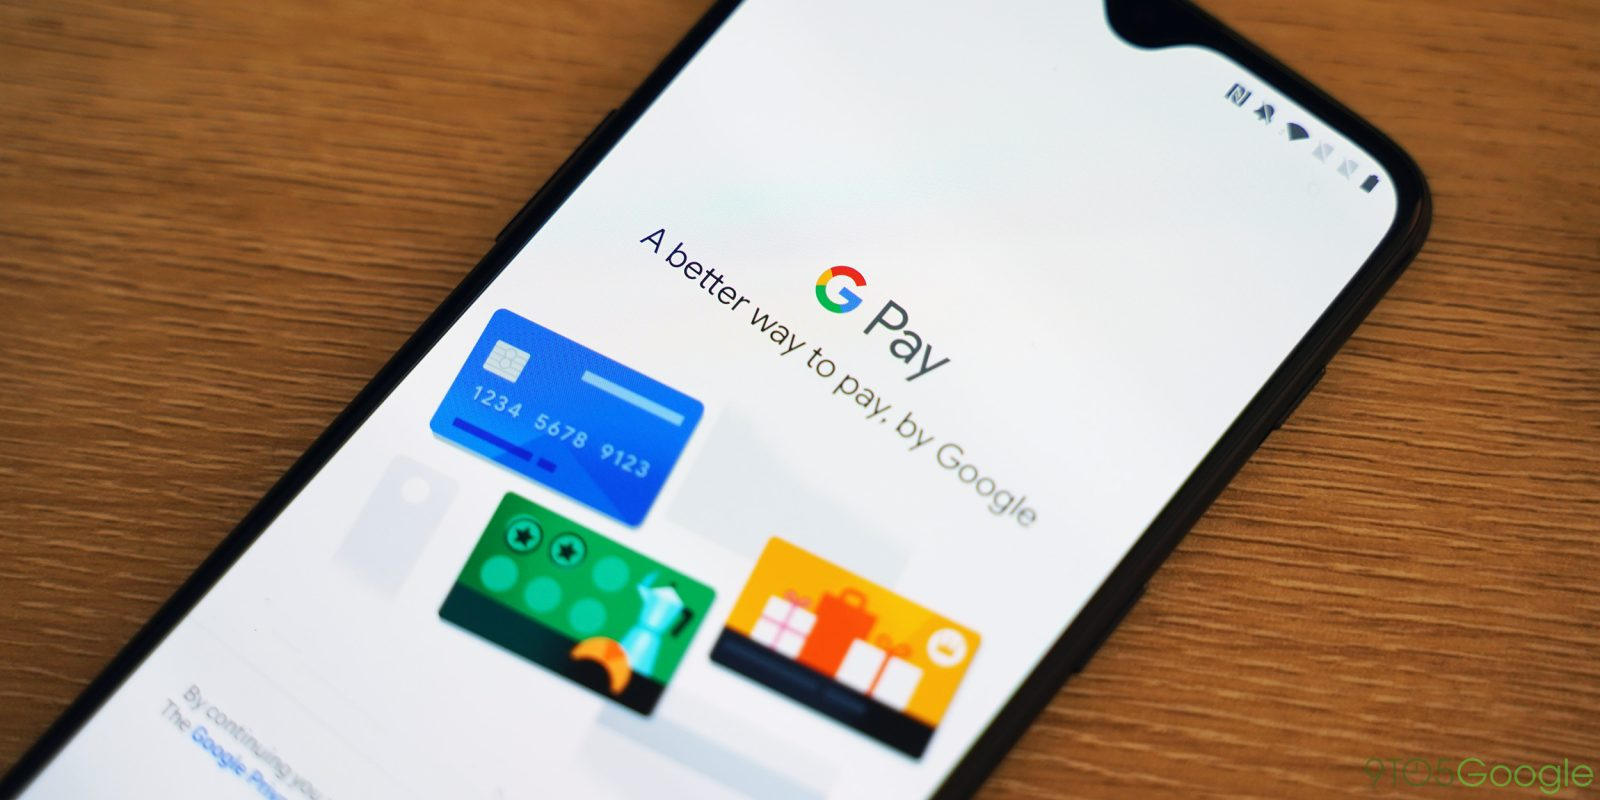 Google Pay has added 12 new banks in the US in June 2019